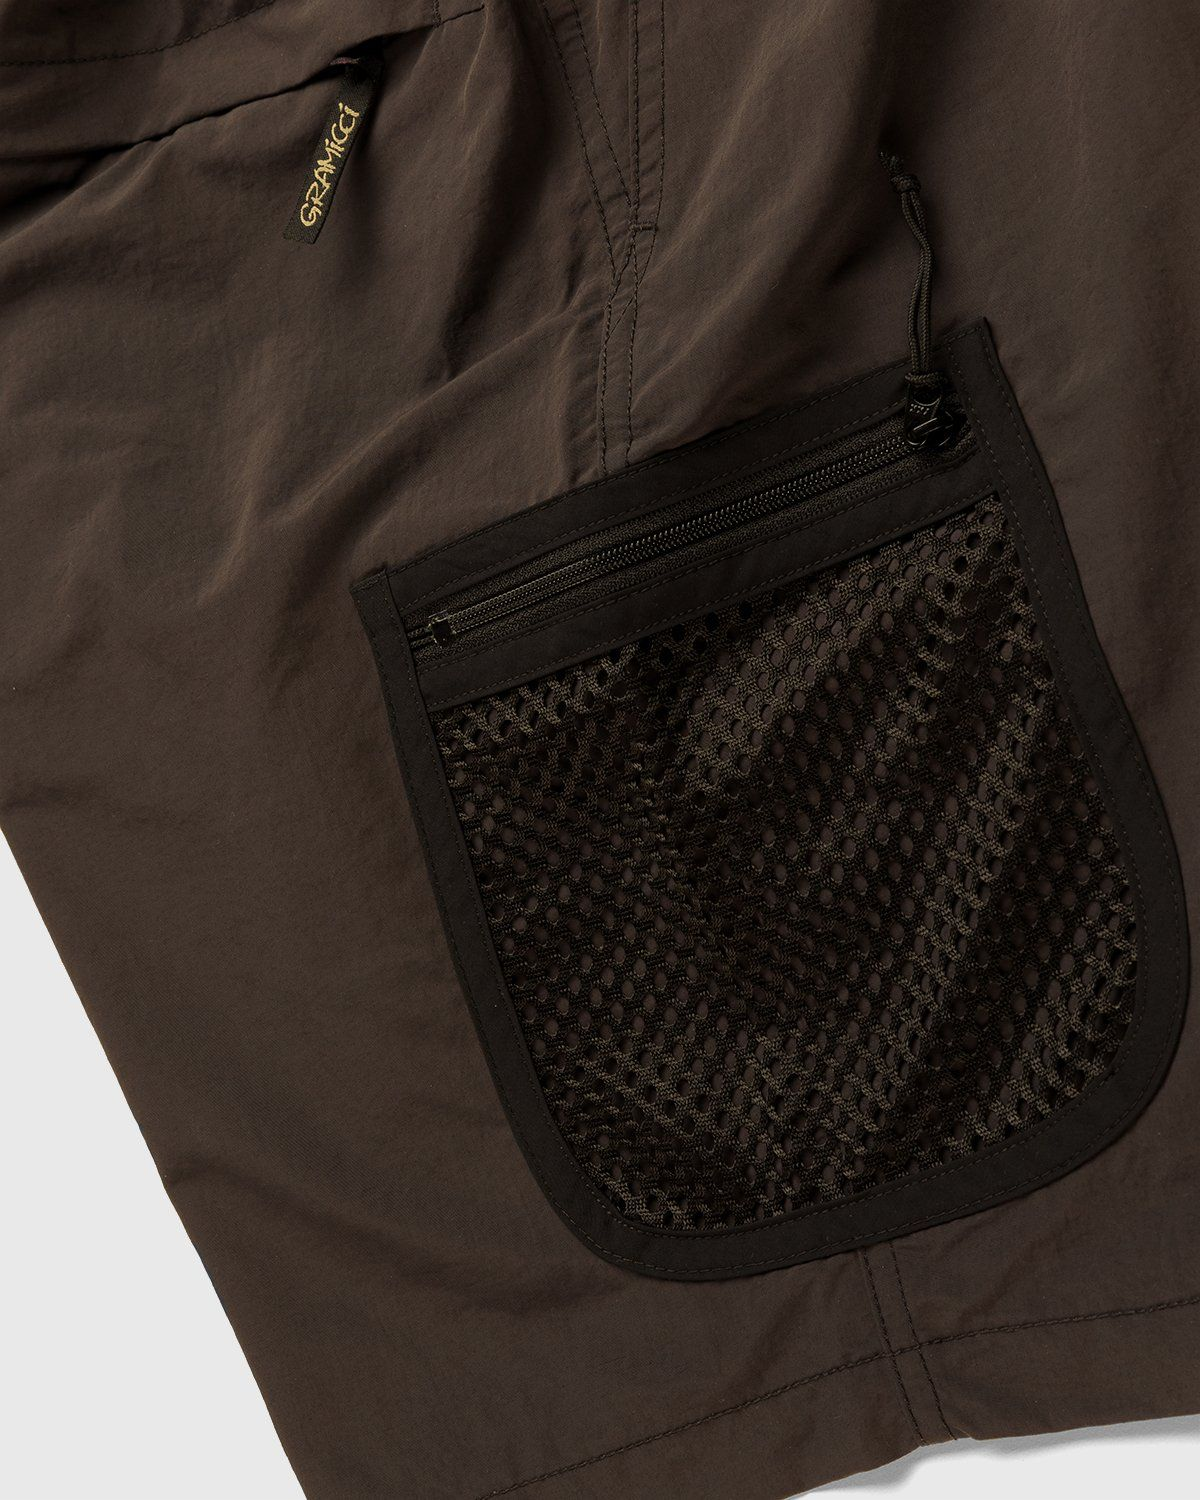 Gramicci for Highsnobiety – Shorts Brown - Image 5